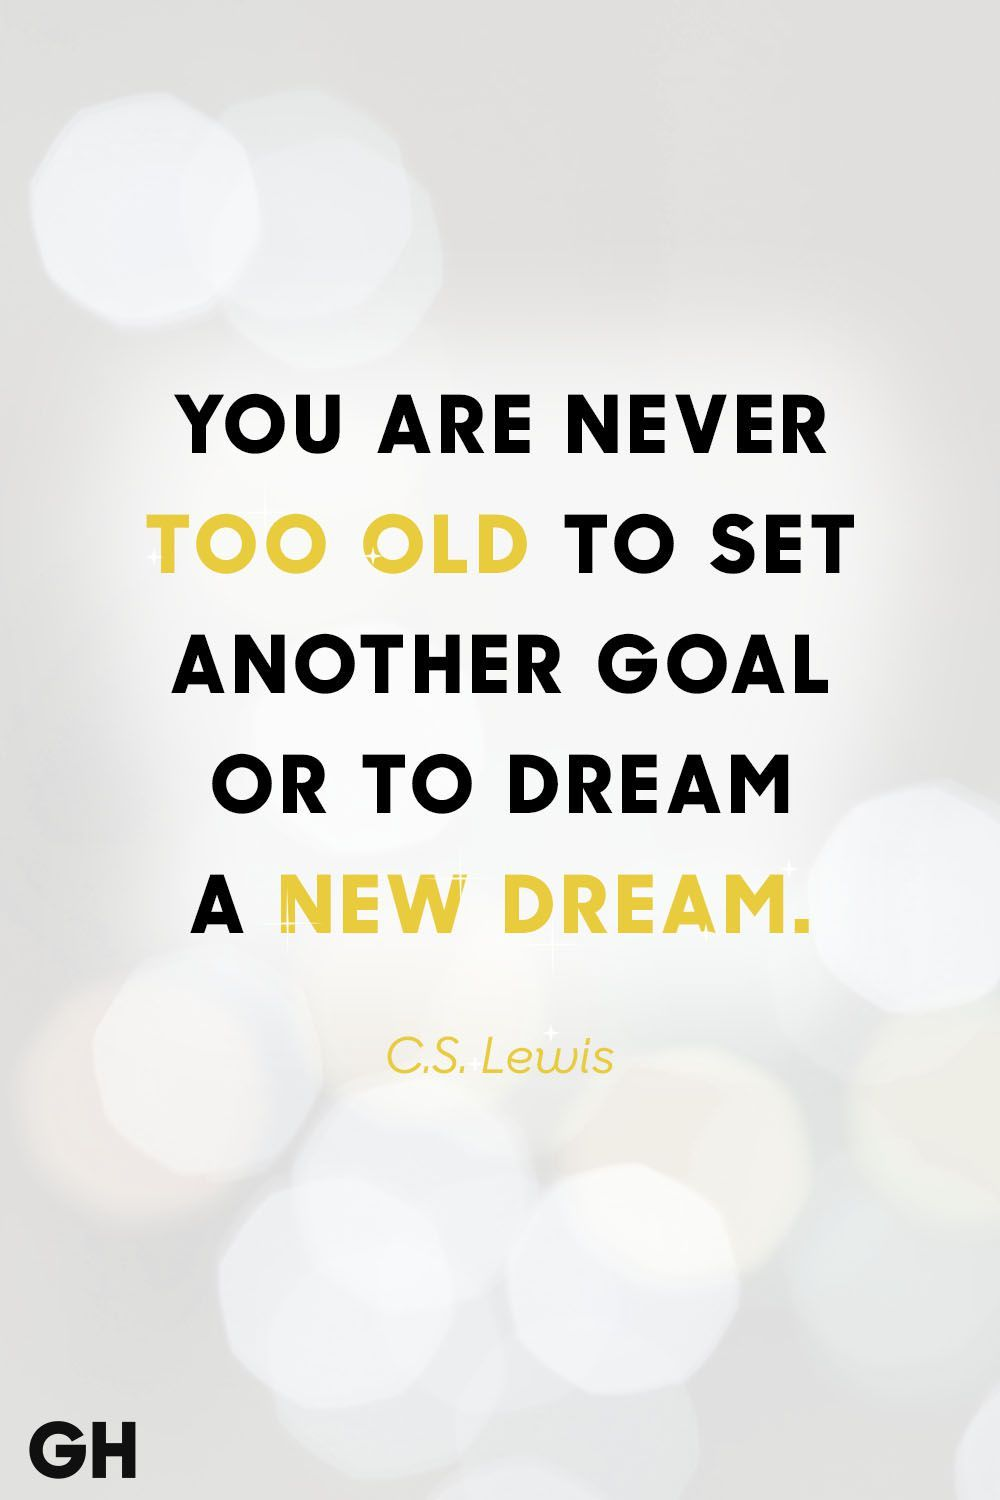 Inspirational Quotes For A Fresh Start In 2021 New Years Eve Quotes Insightful Quotes Wisdom Quotes